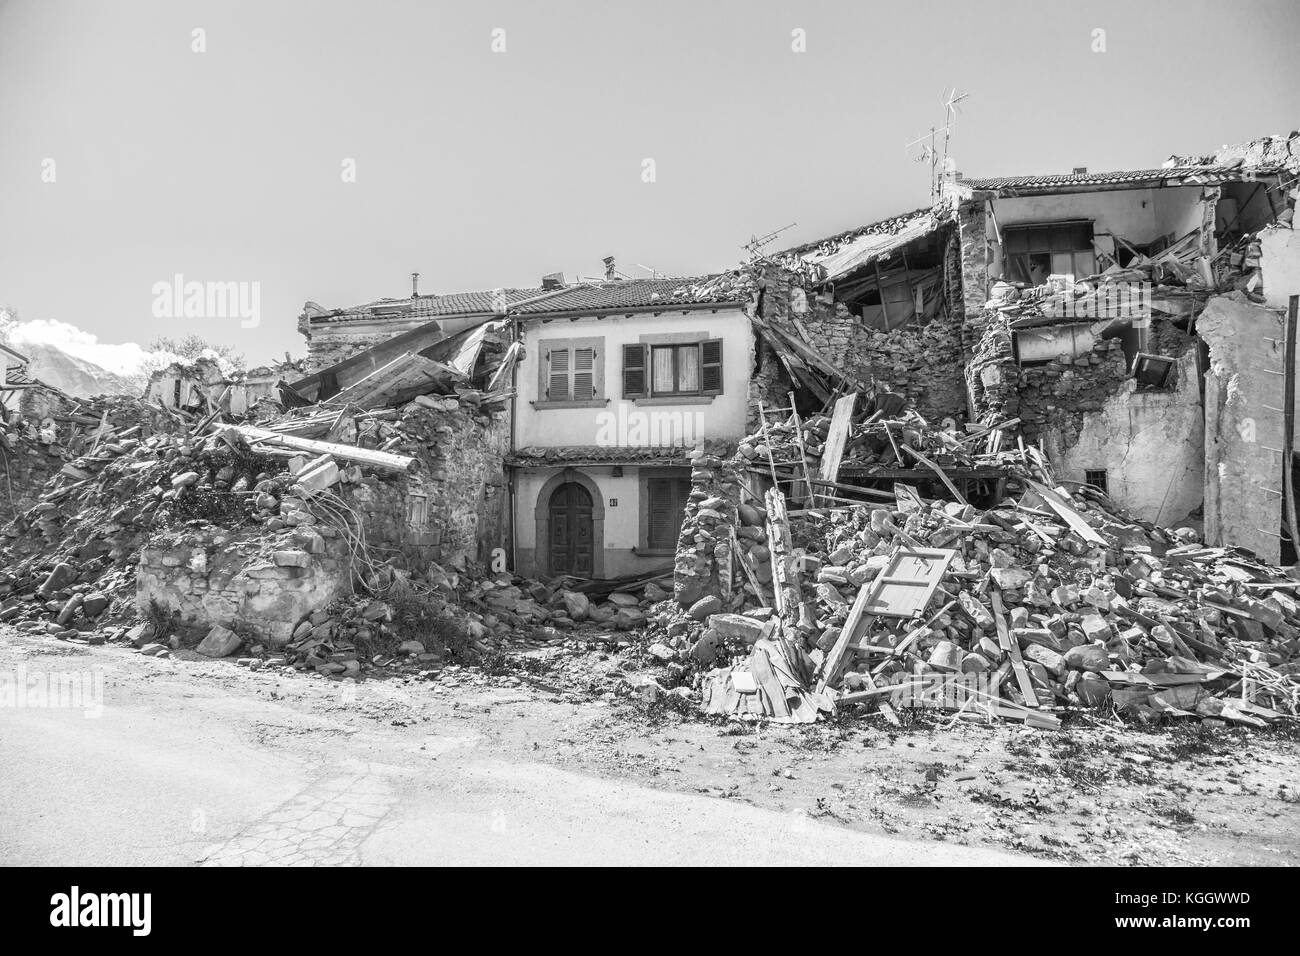 Prato of Amatrice,Italy. 29 April 2017. The damage caused by the earthquake that hit central Italy in 2016. Prato - Stock Image